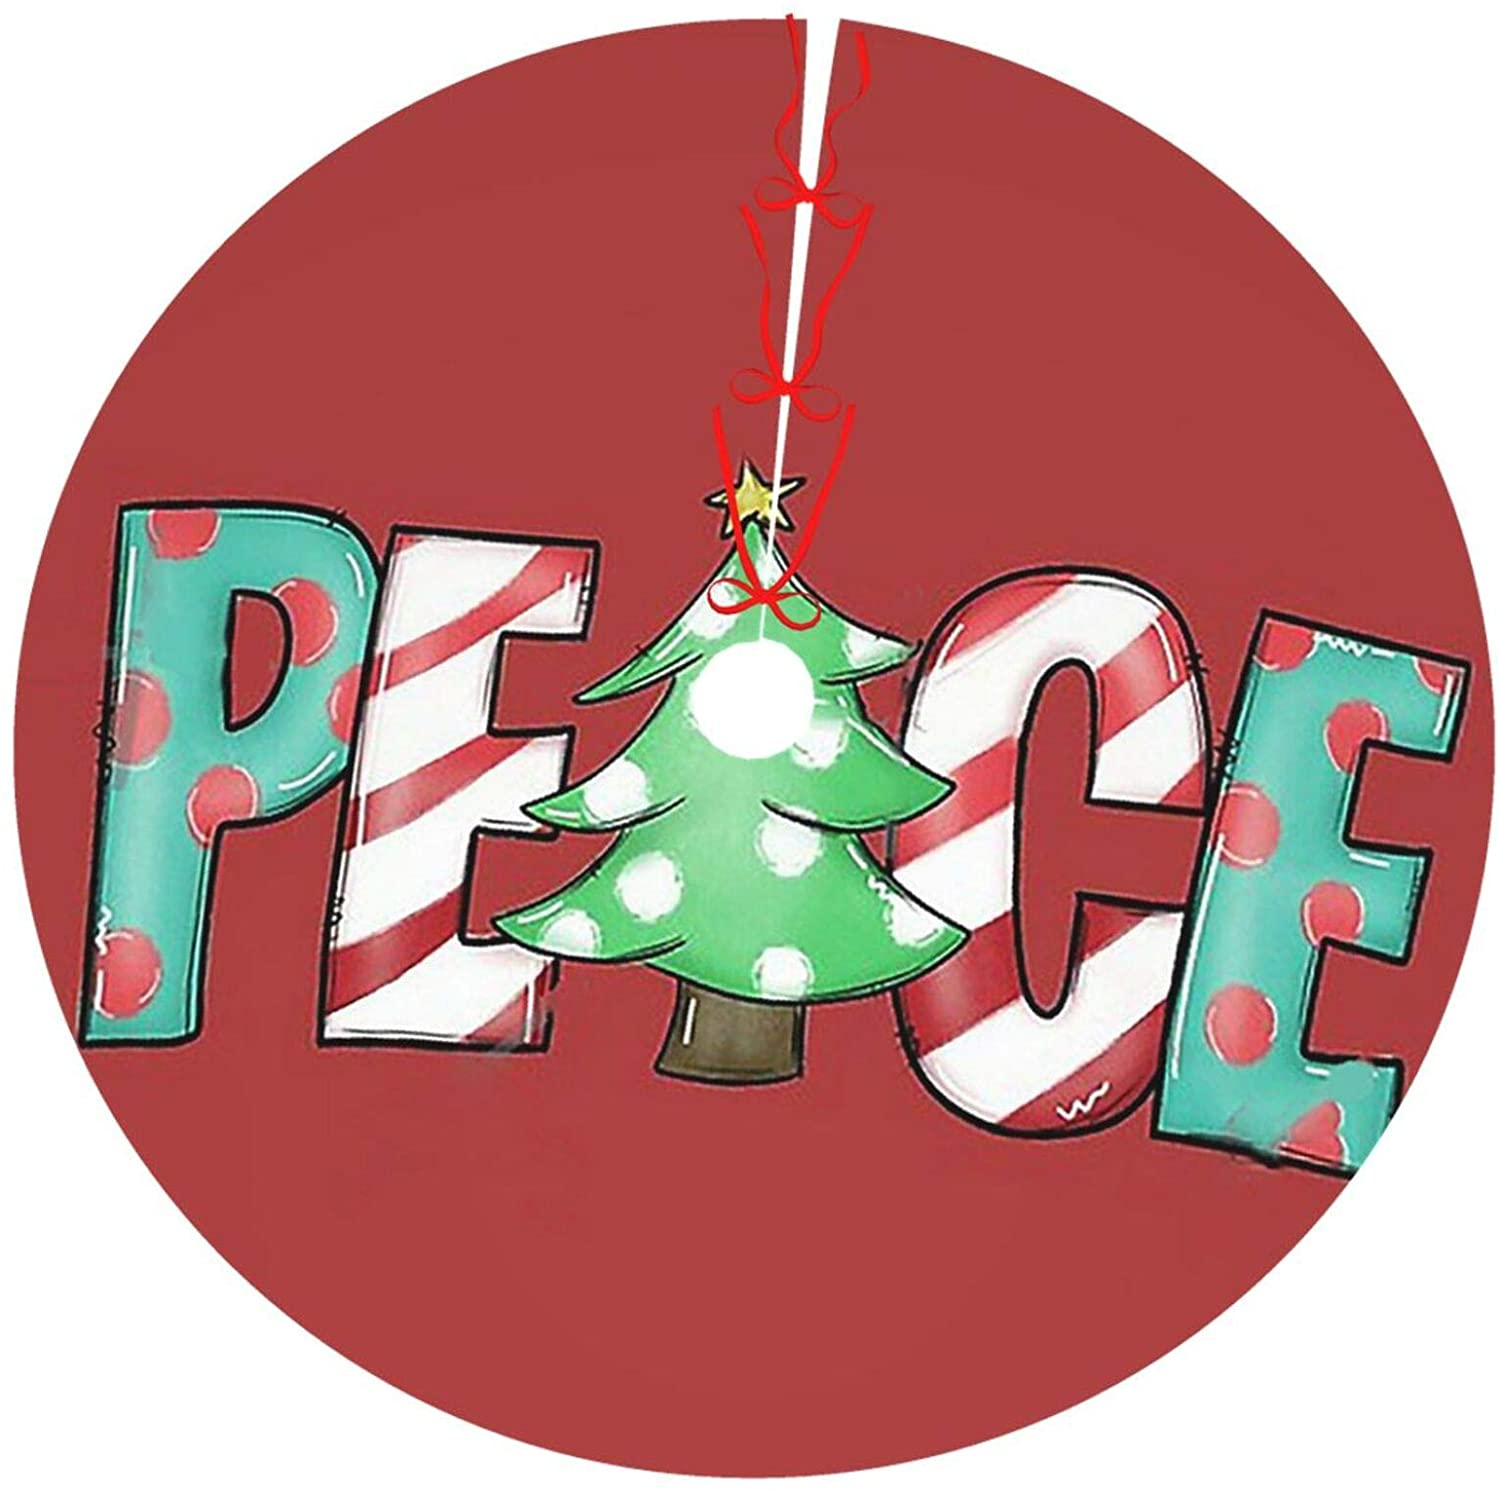 Hhjszj Christmas Peace Christmas Tree Skirt - Tree Skirts for Holiday Party Christmas Decorations Indoor Outdoor